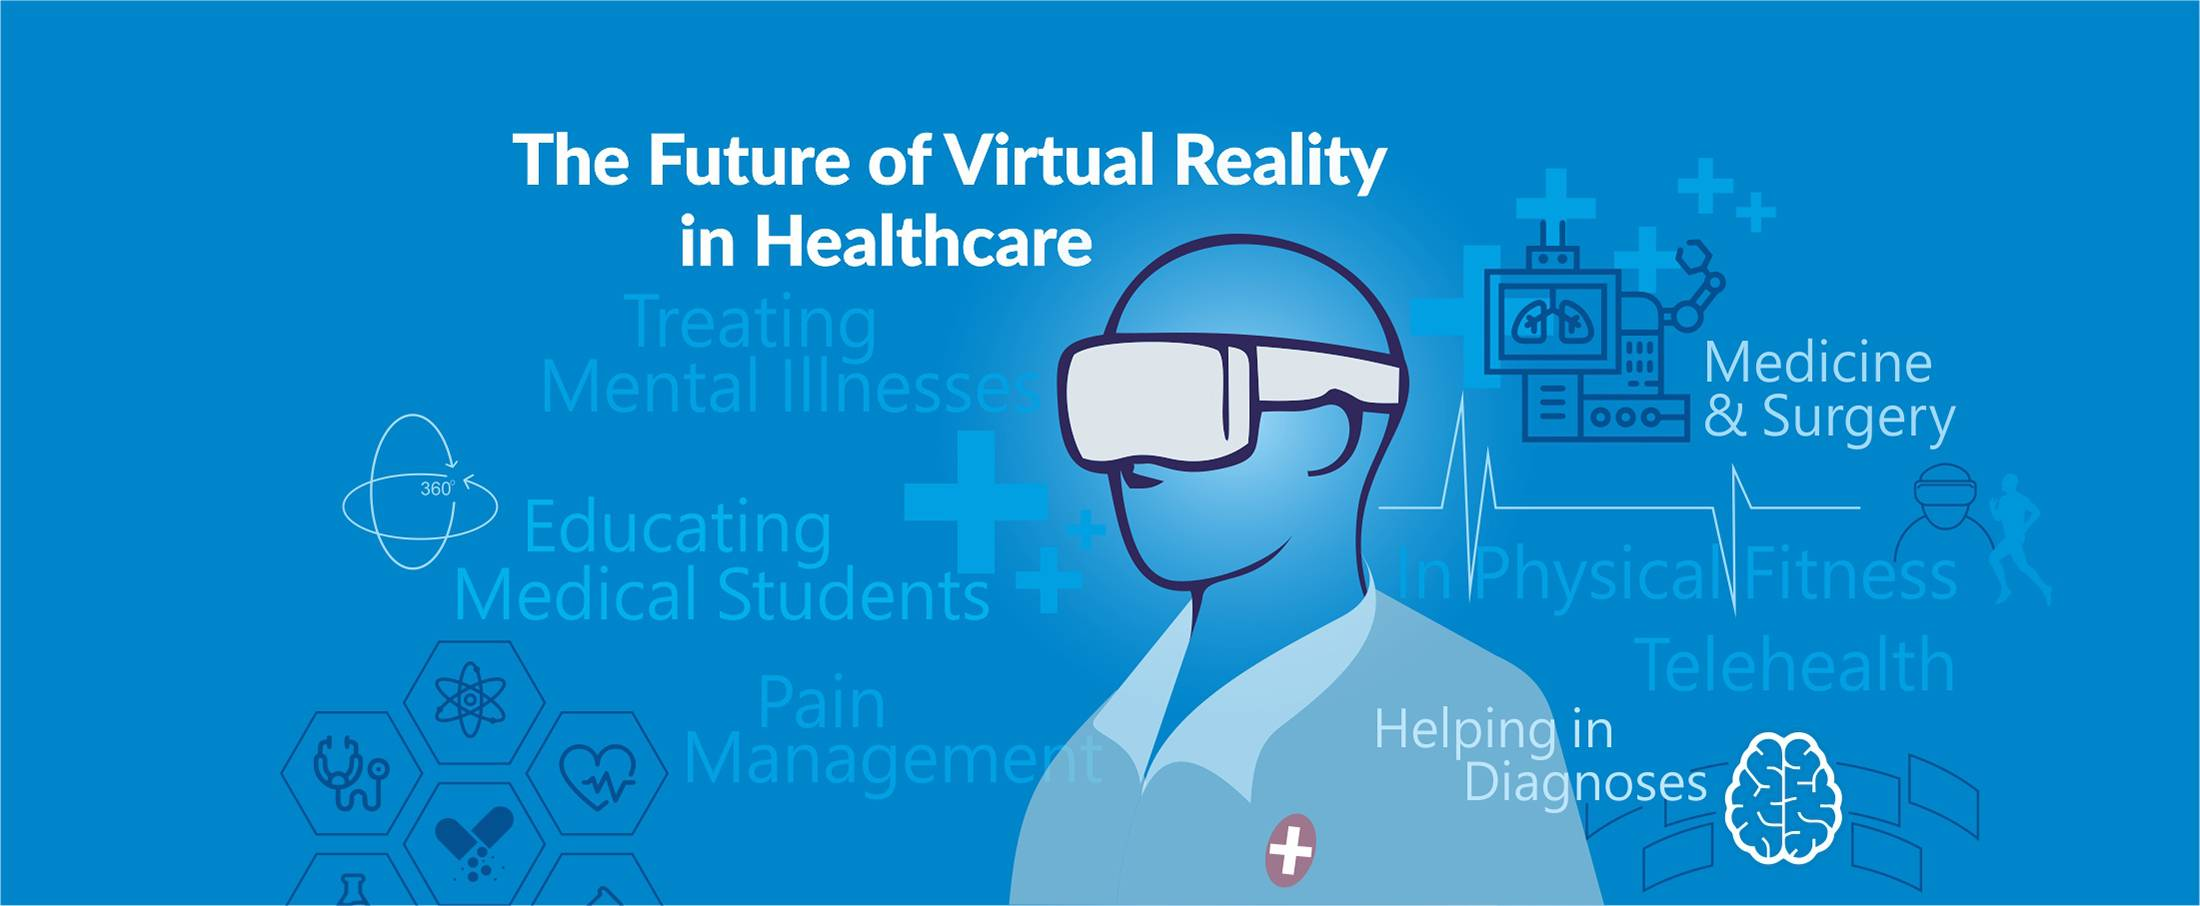 The Future of Virtual Reality in Healthcare